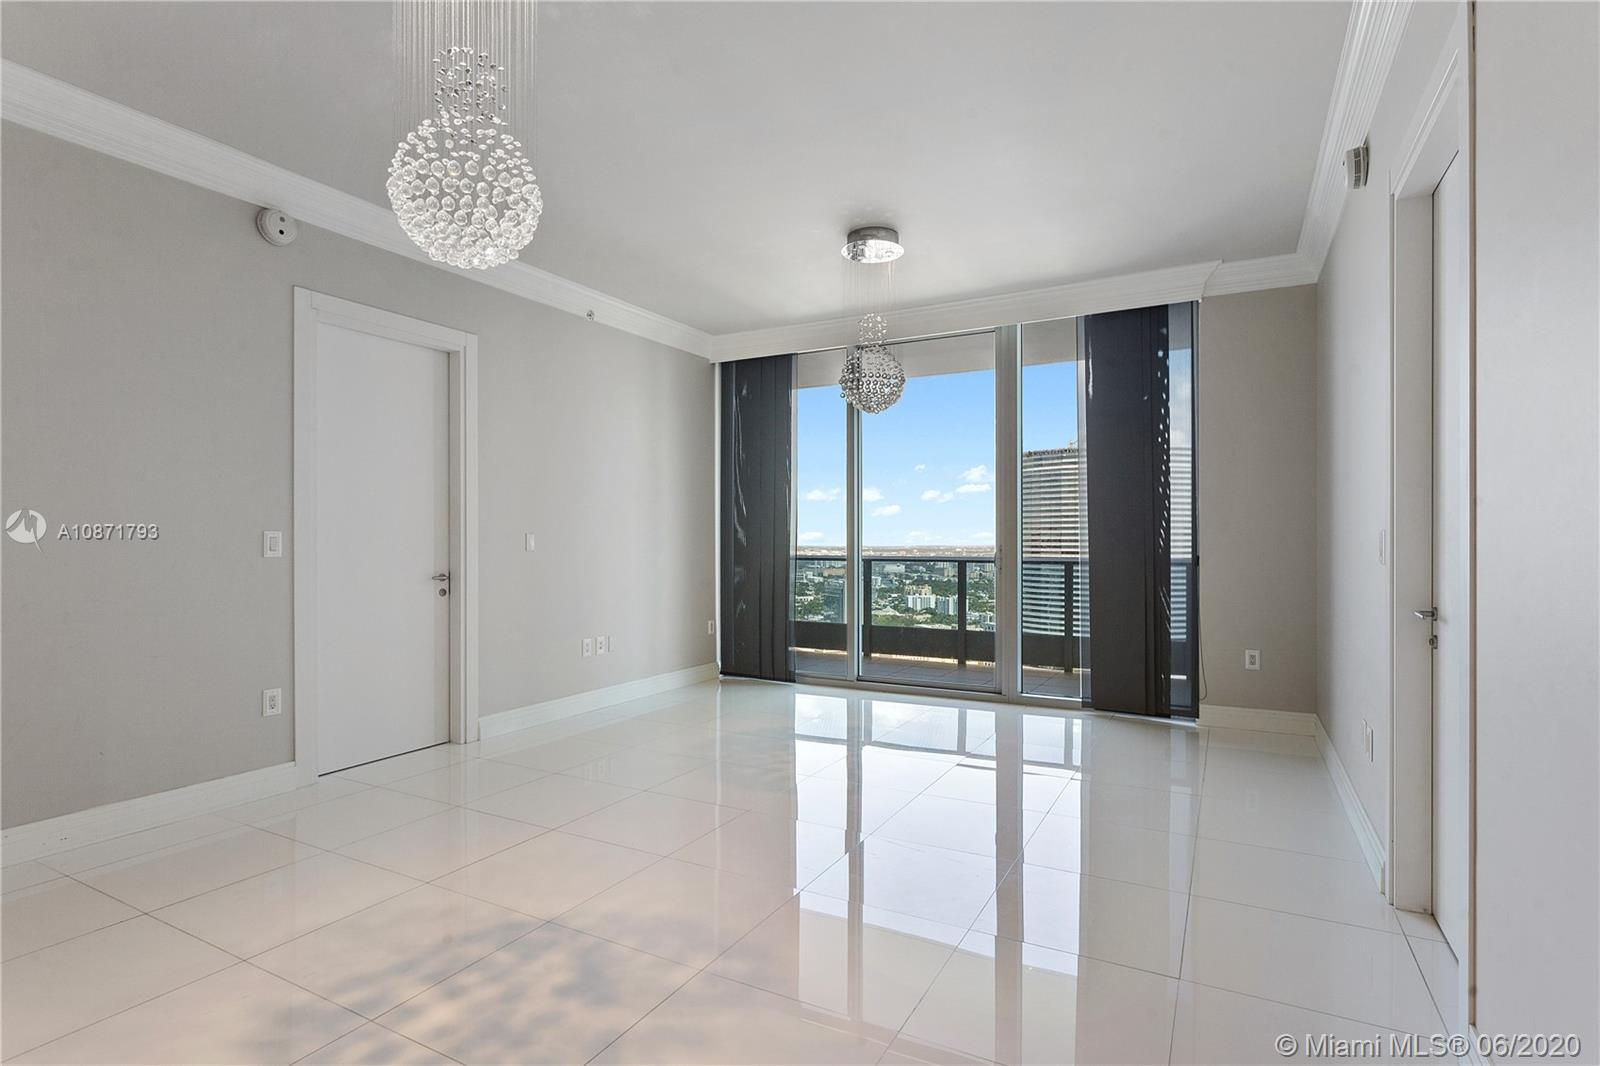 200  Biscayne Boulevard Way #5009 For Sale A10871793, FL